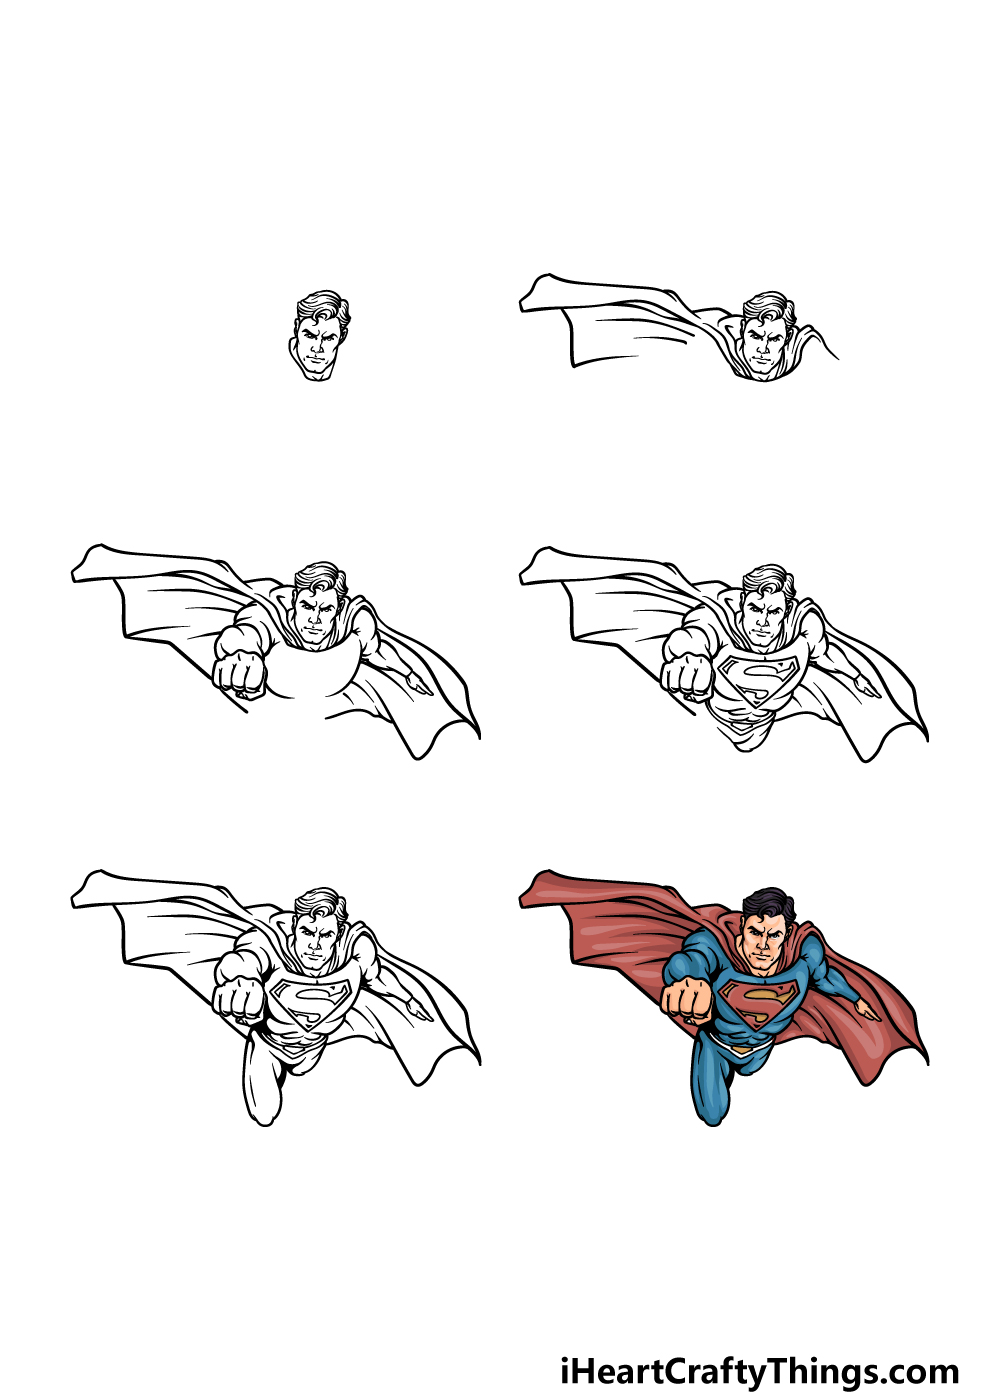 how to draw a Superman in 6 steps